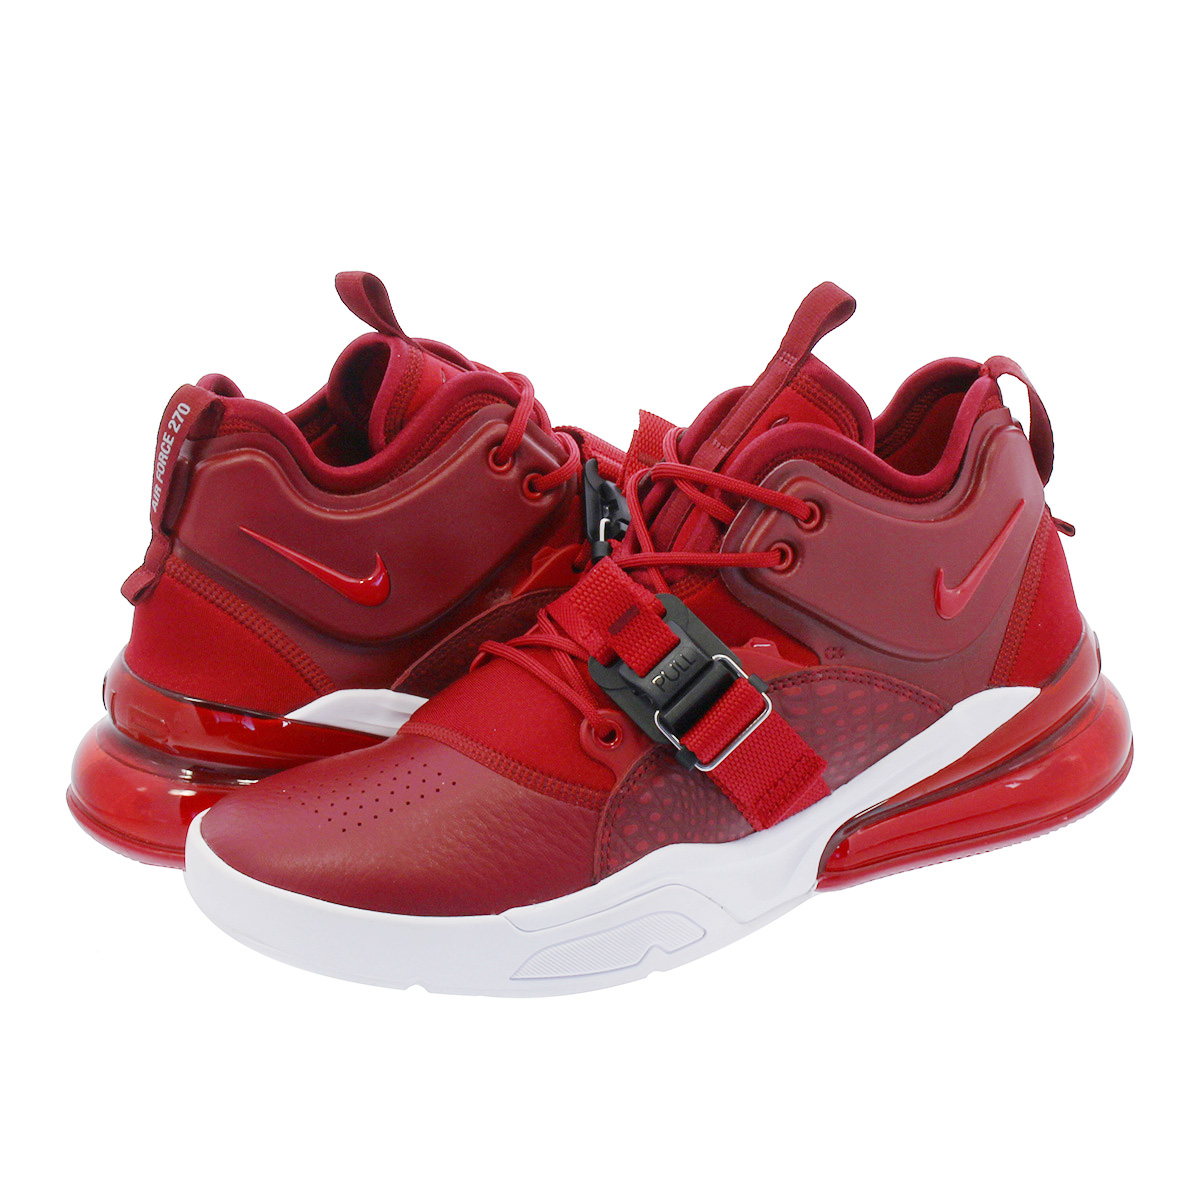 NIKE AIR FORCE 270 ナイキ エア フォース 270 TEAM RED/GYM RED ah6772-600